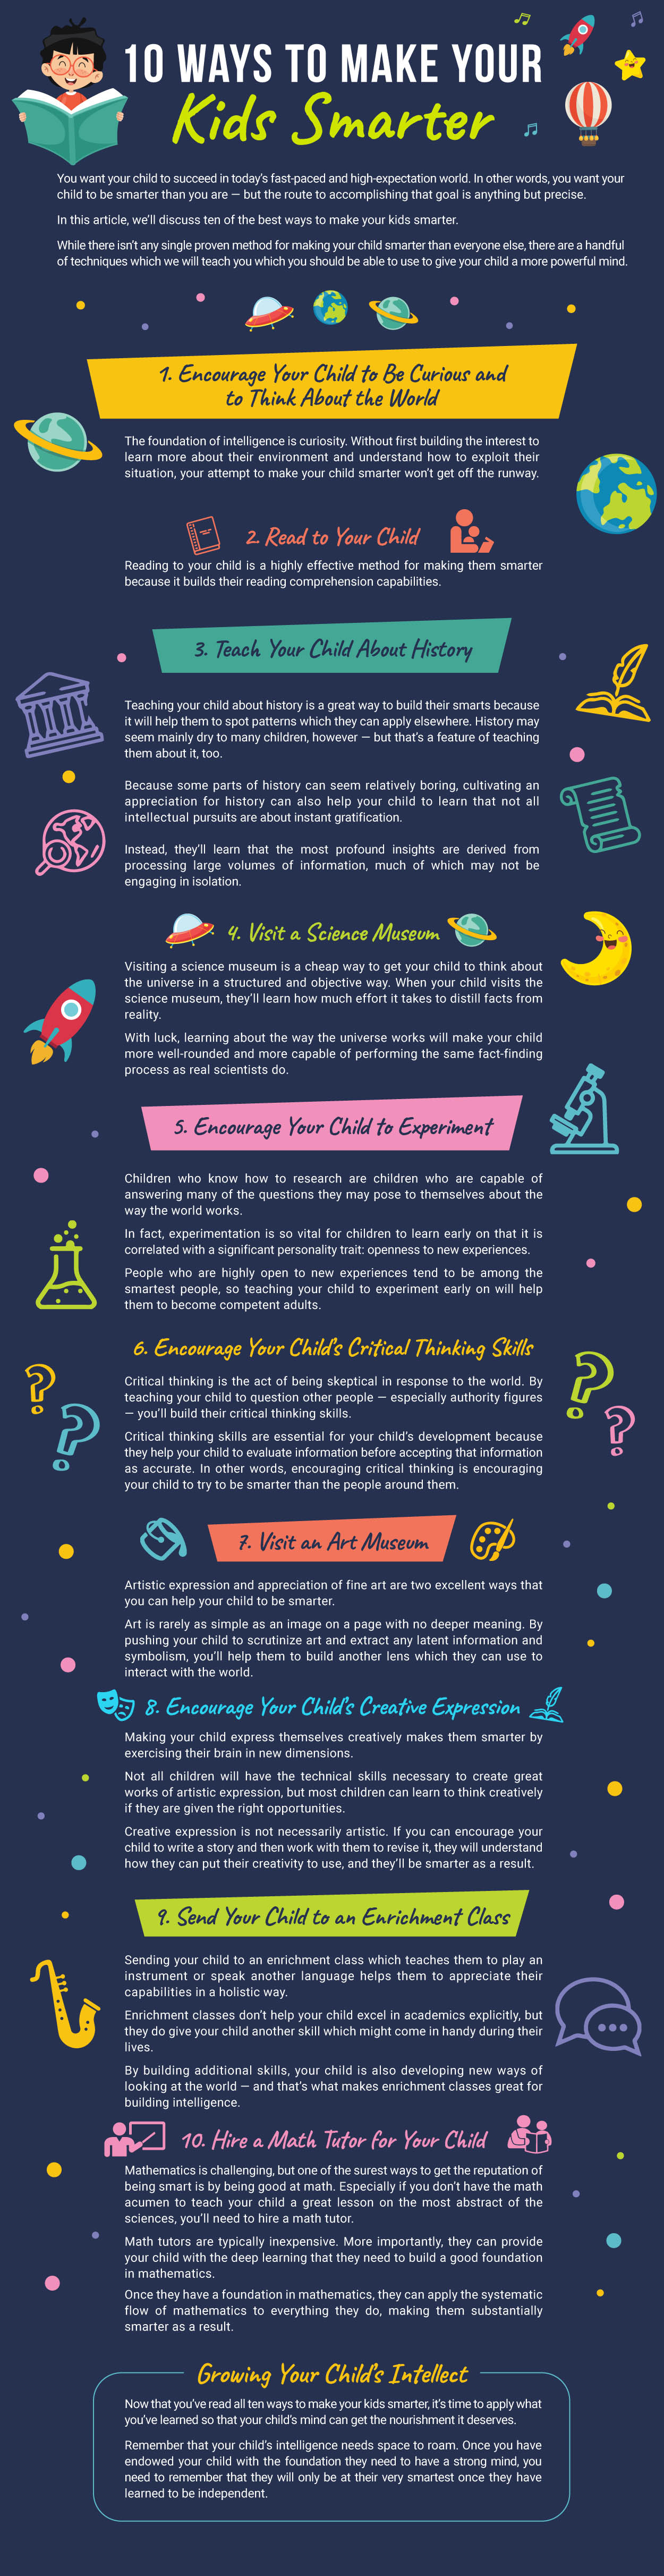 10-ways-make-your-kids-smarter-infographic-plaza